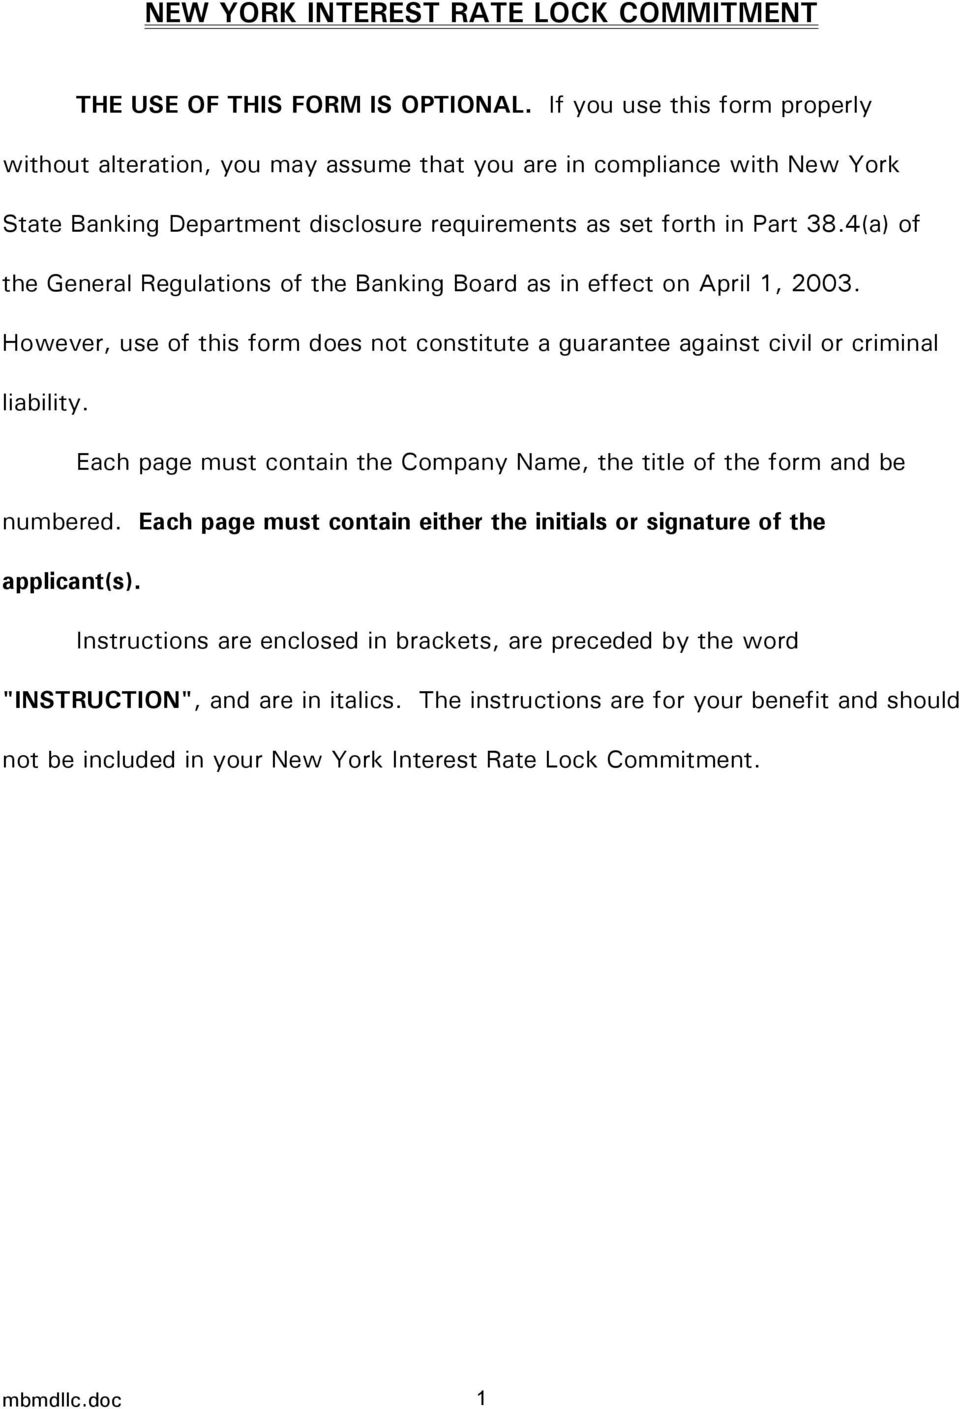 4(a) of the General Regulations of the Banking Board as in effect on April 1, 2003. However, use of this form does not constitute a guarantee against civil or criminal liability.